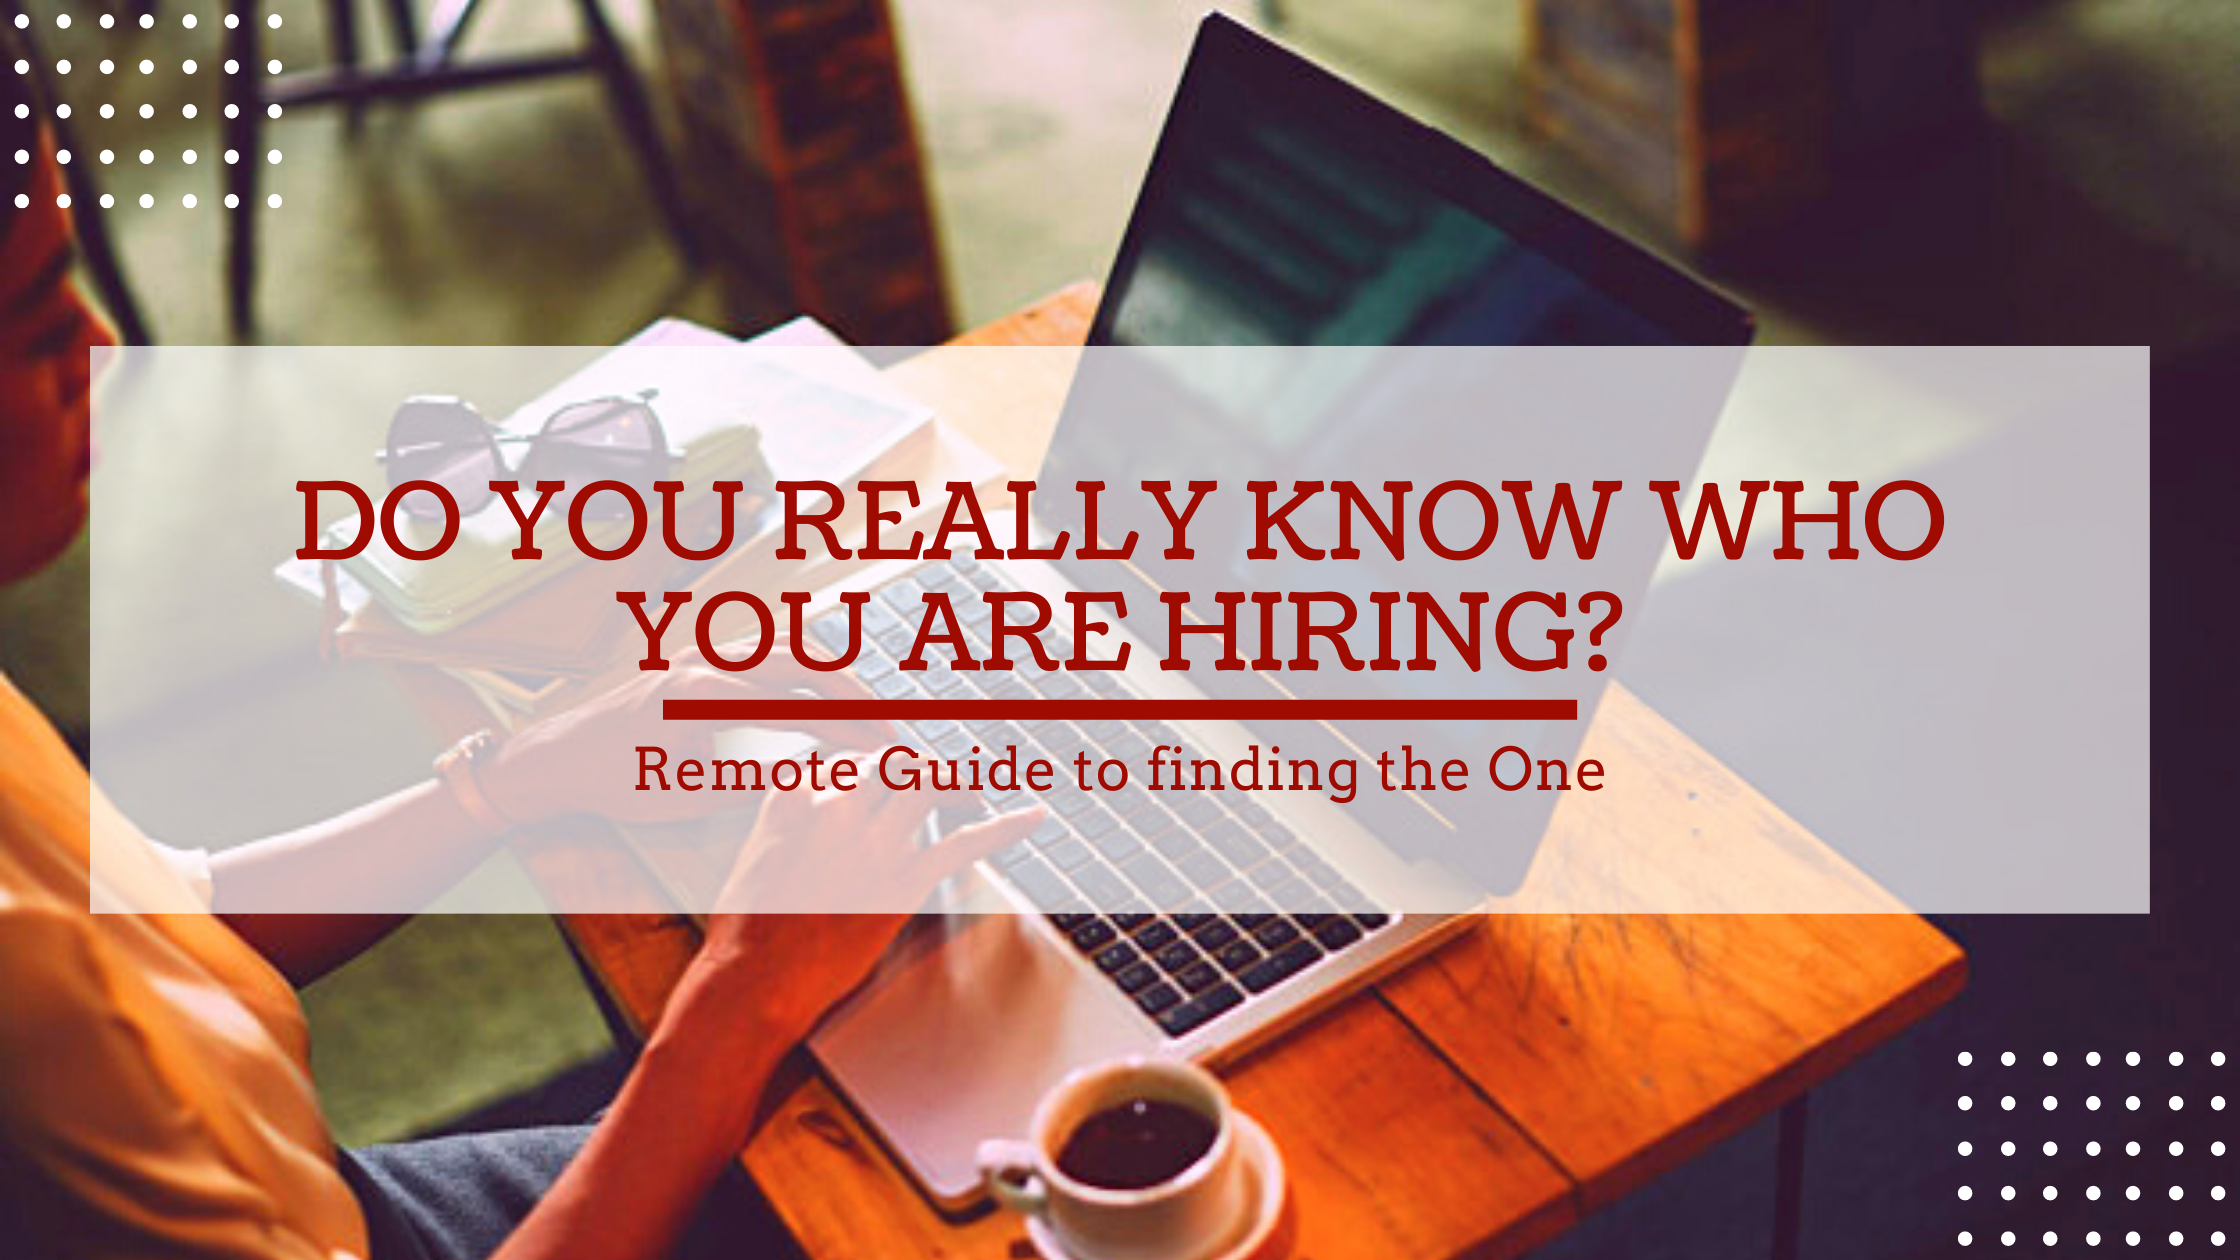 Do you really know who you are hiring? REMOTE guide to finding the ONE